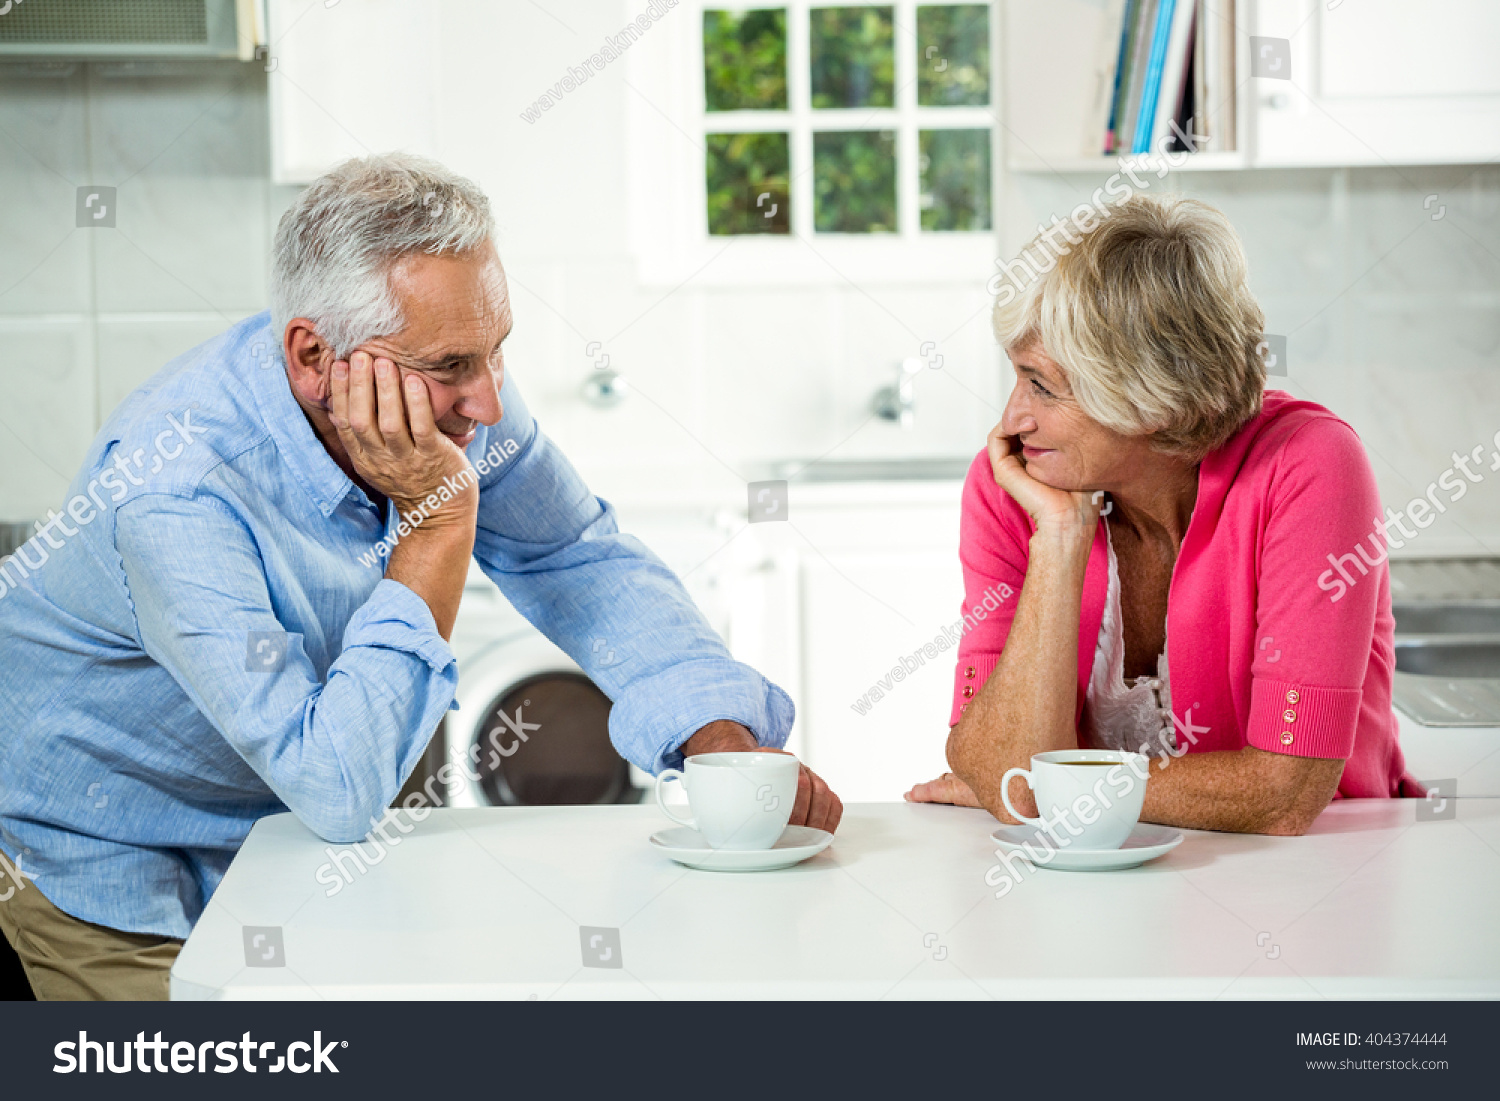 Romantic Senior Couple Coffee Cups Table Stock Photo (Download Now ...